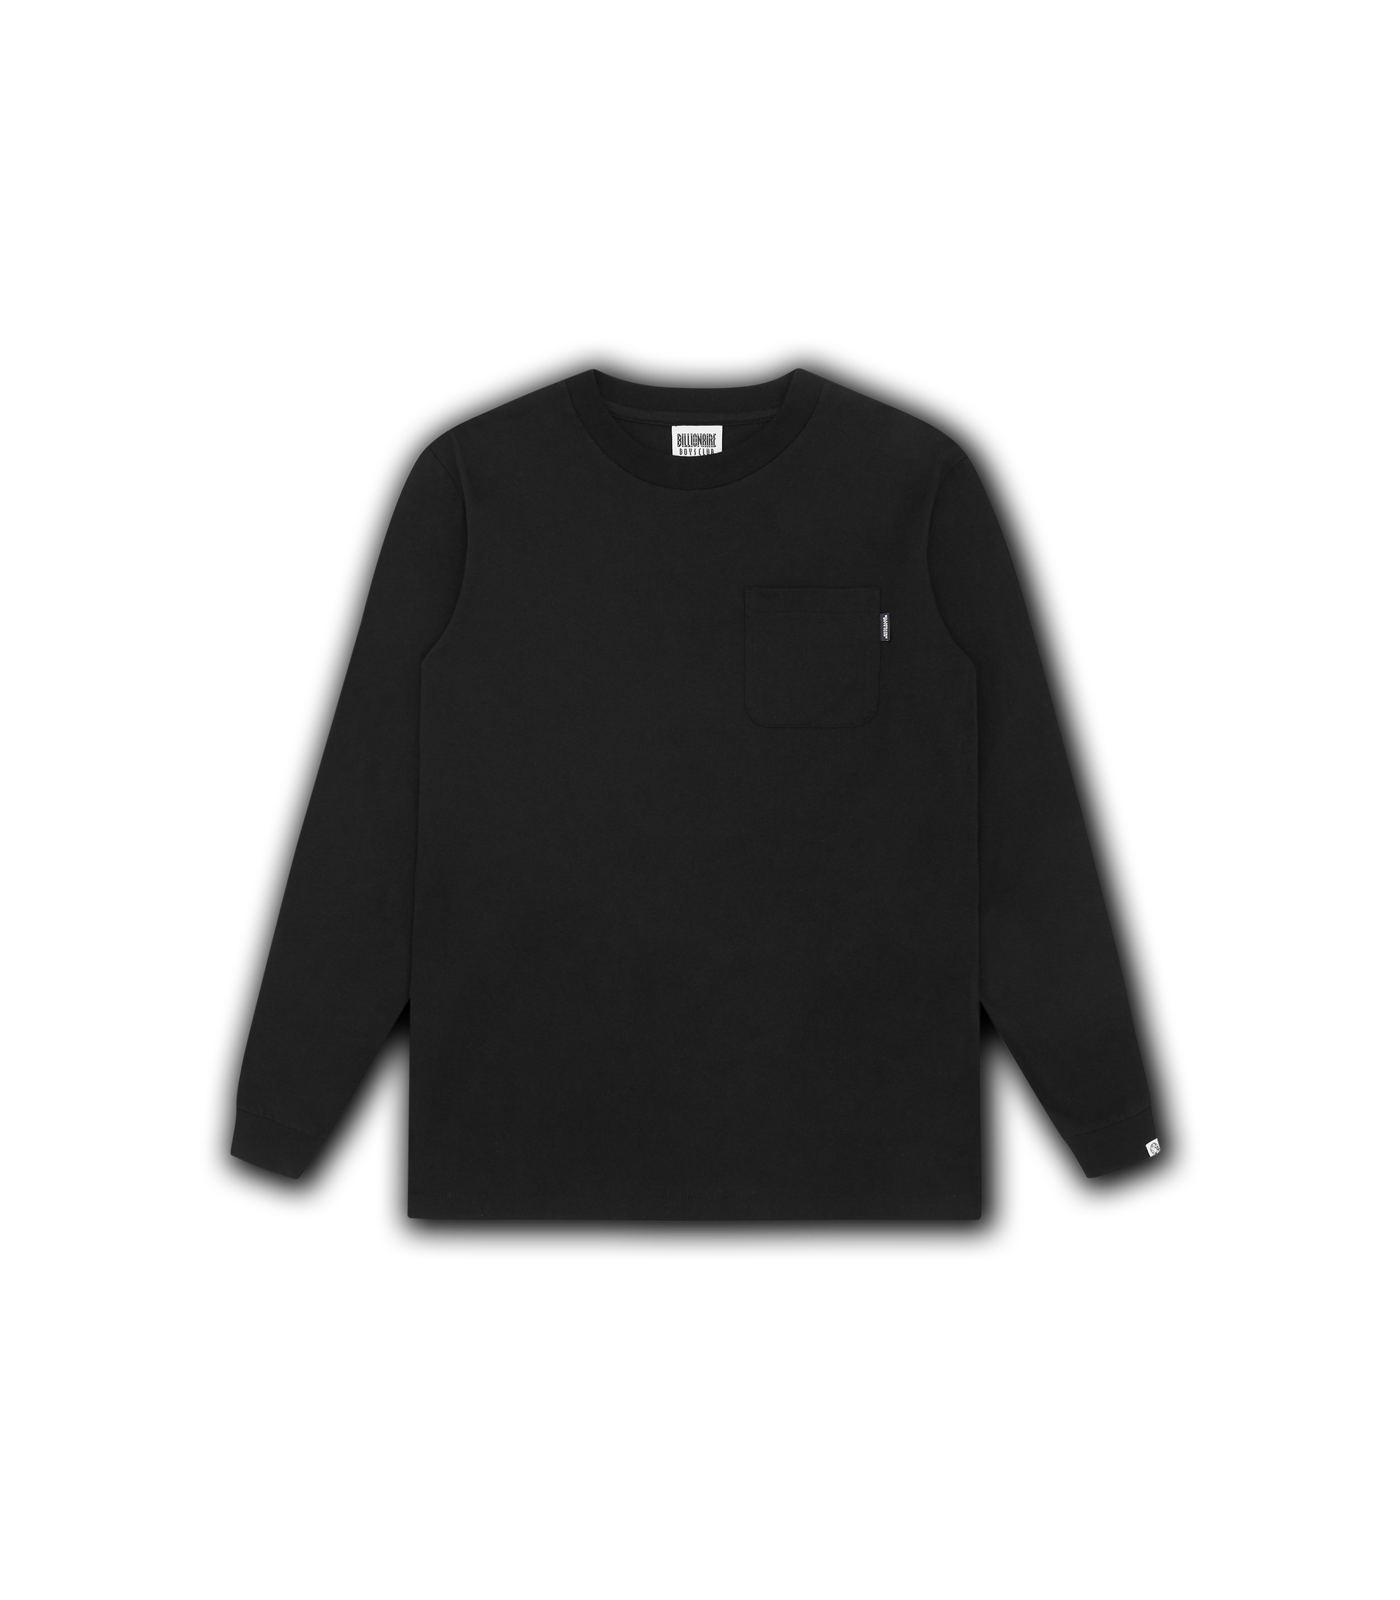 KINETIC L/S T-SHIRT - BLACK